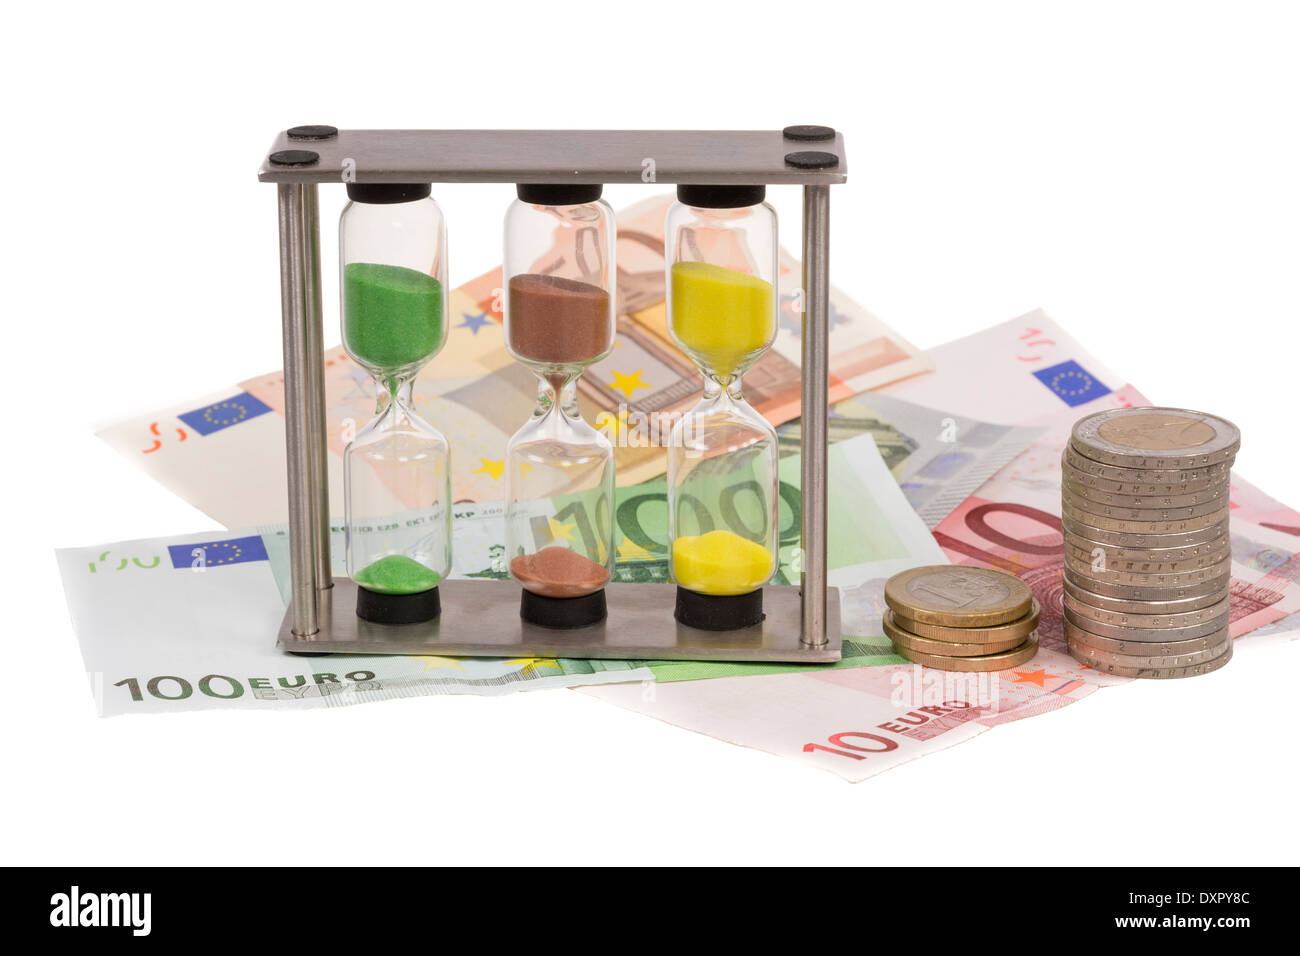 Sandglass and a couple of eure banknotes. - Stock Image